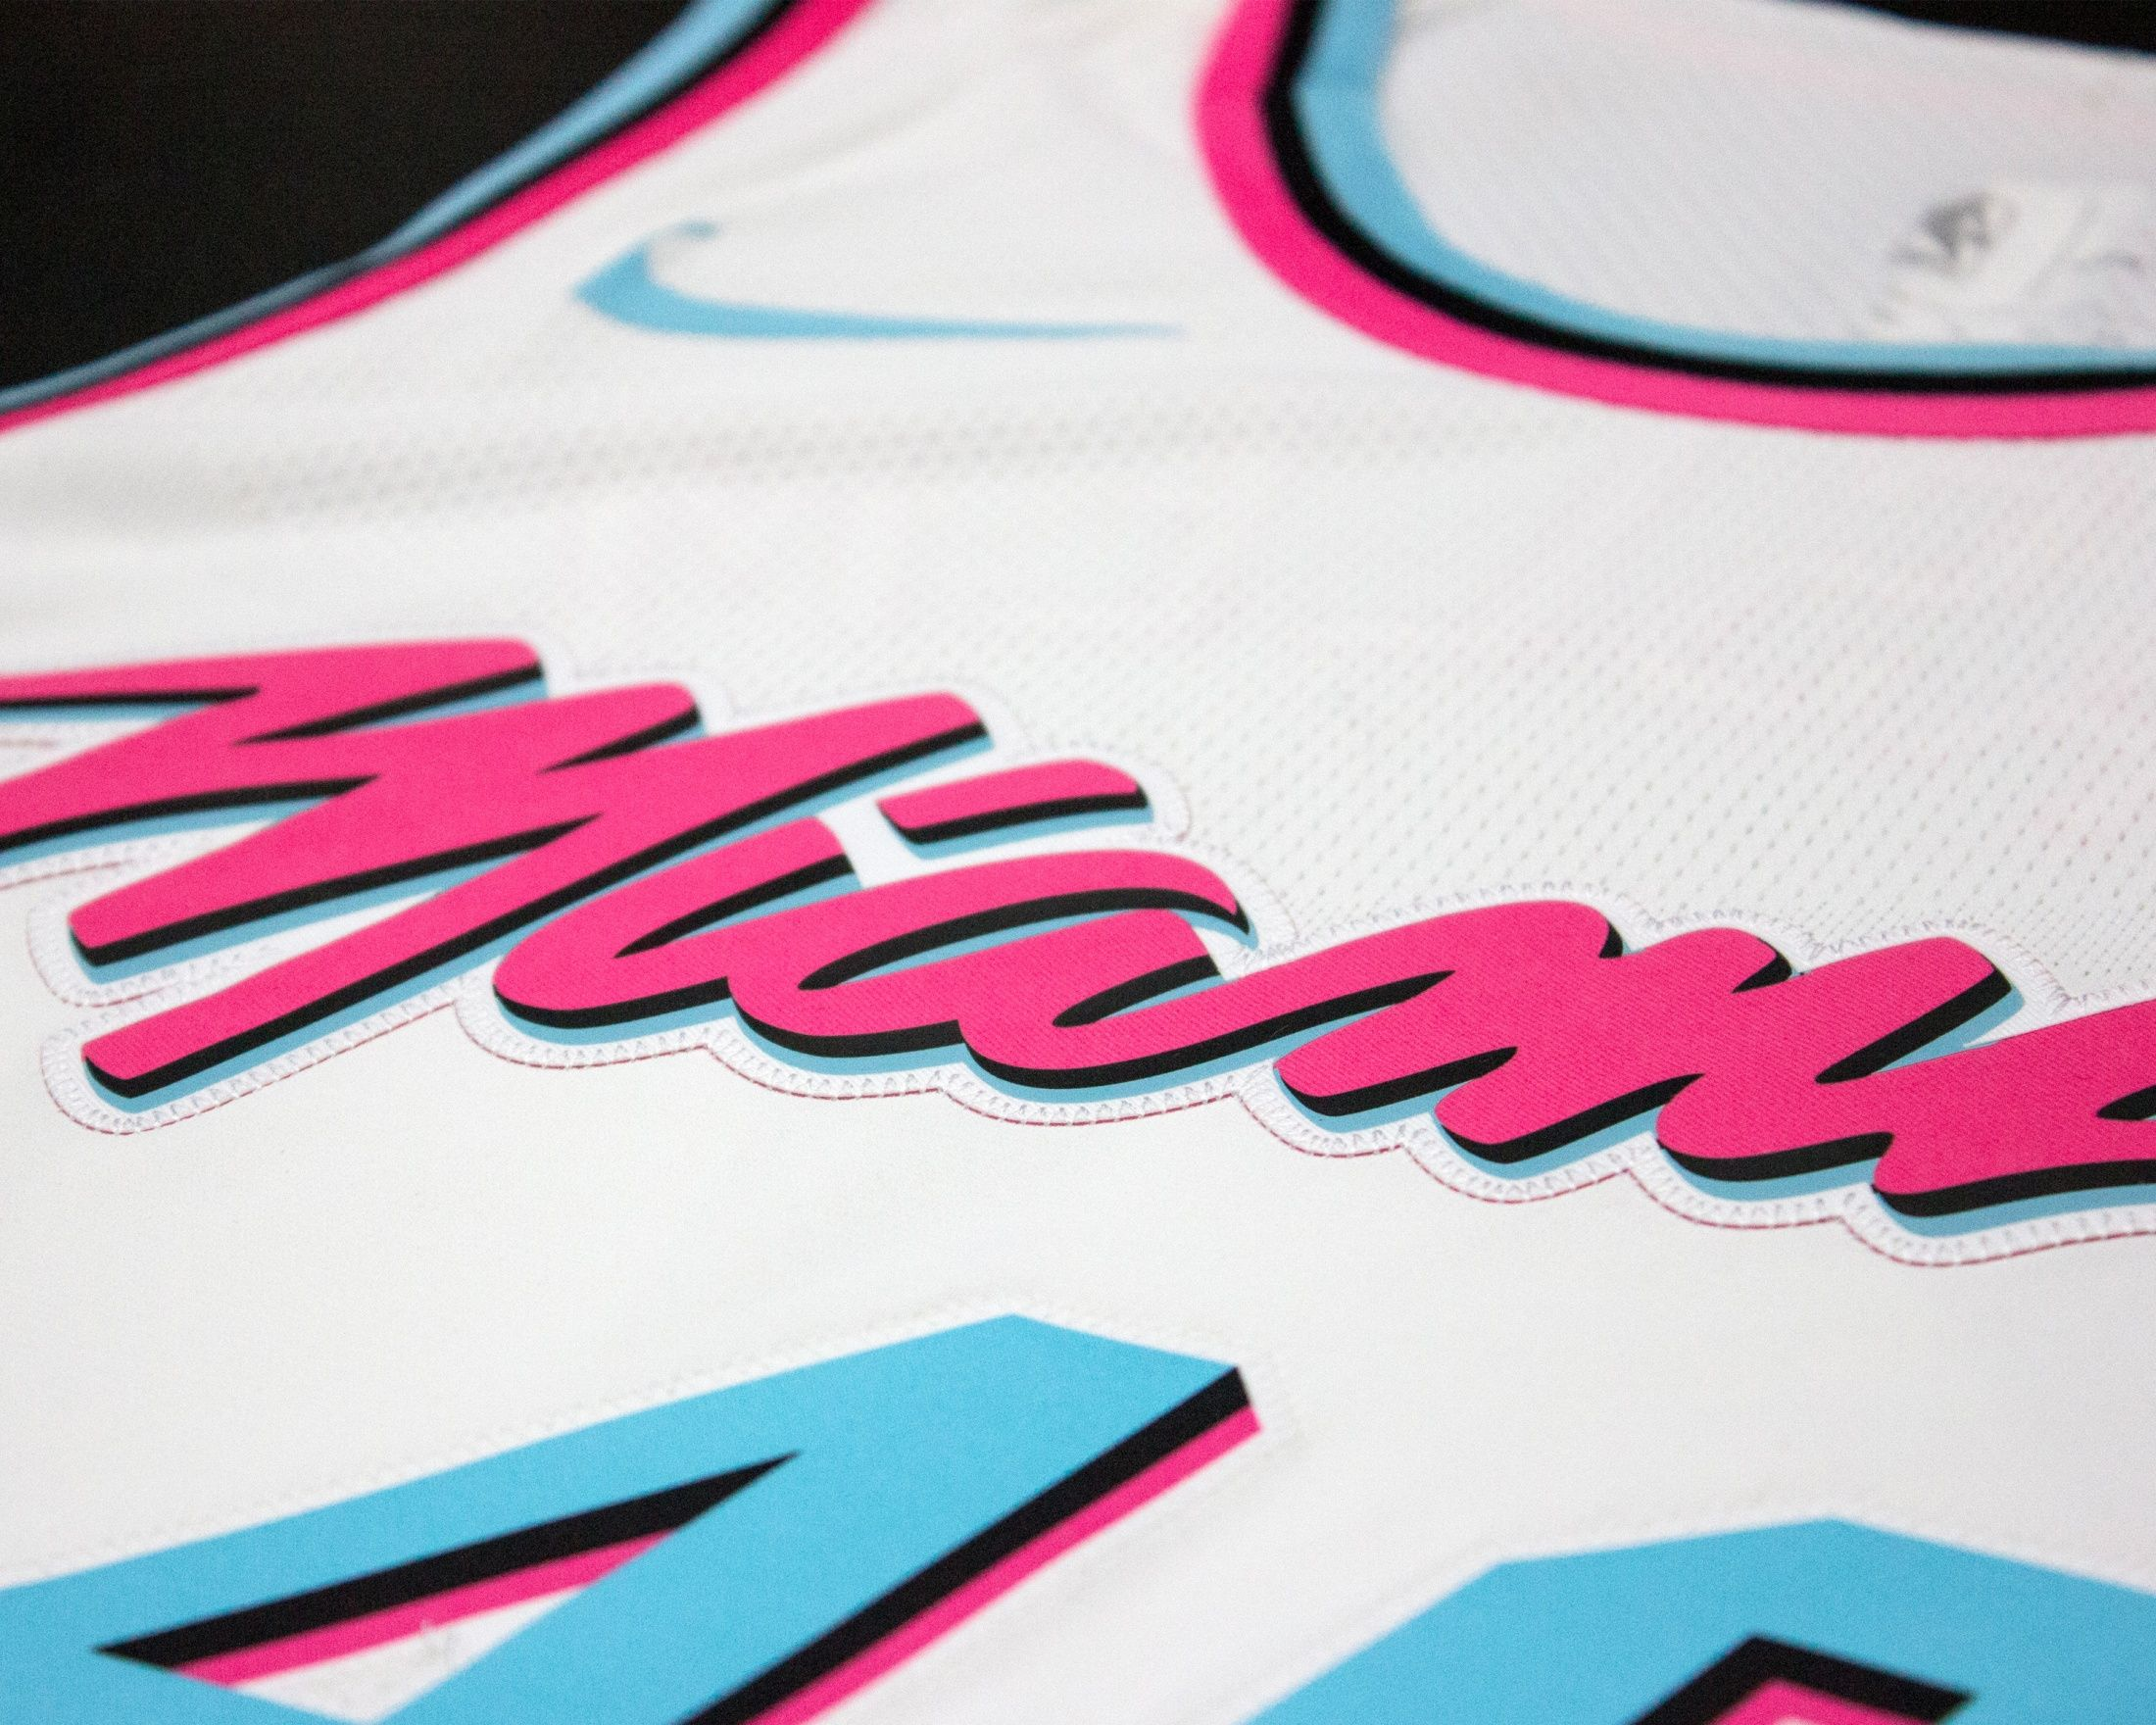 Thumbnail For Miami Heat Vice Uniform Miami Heat Miami Brand Colors